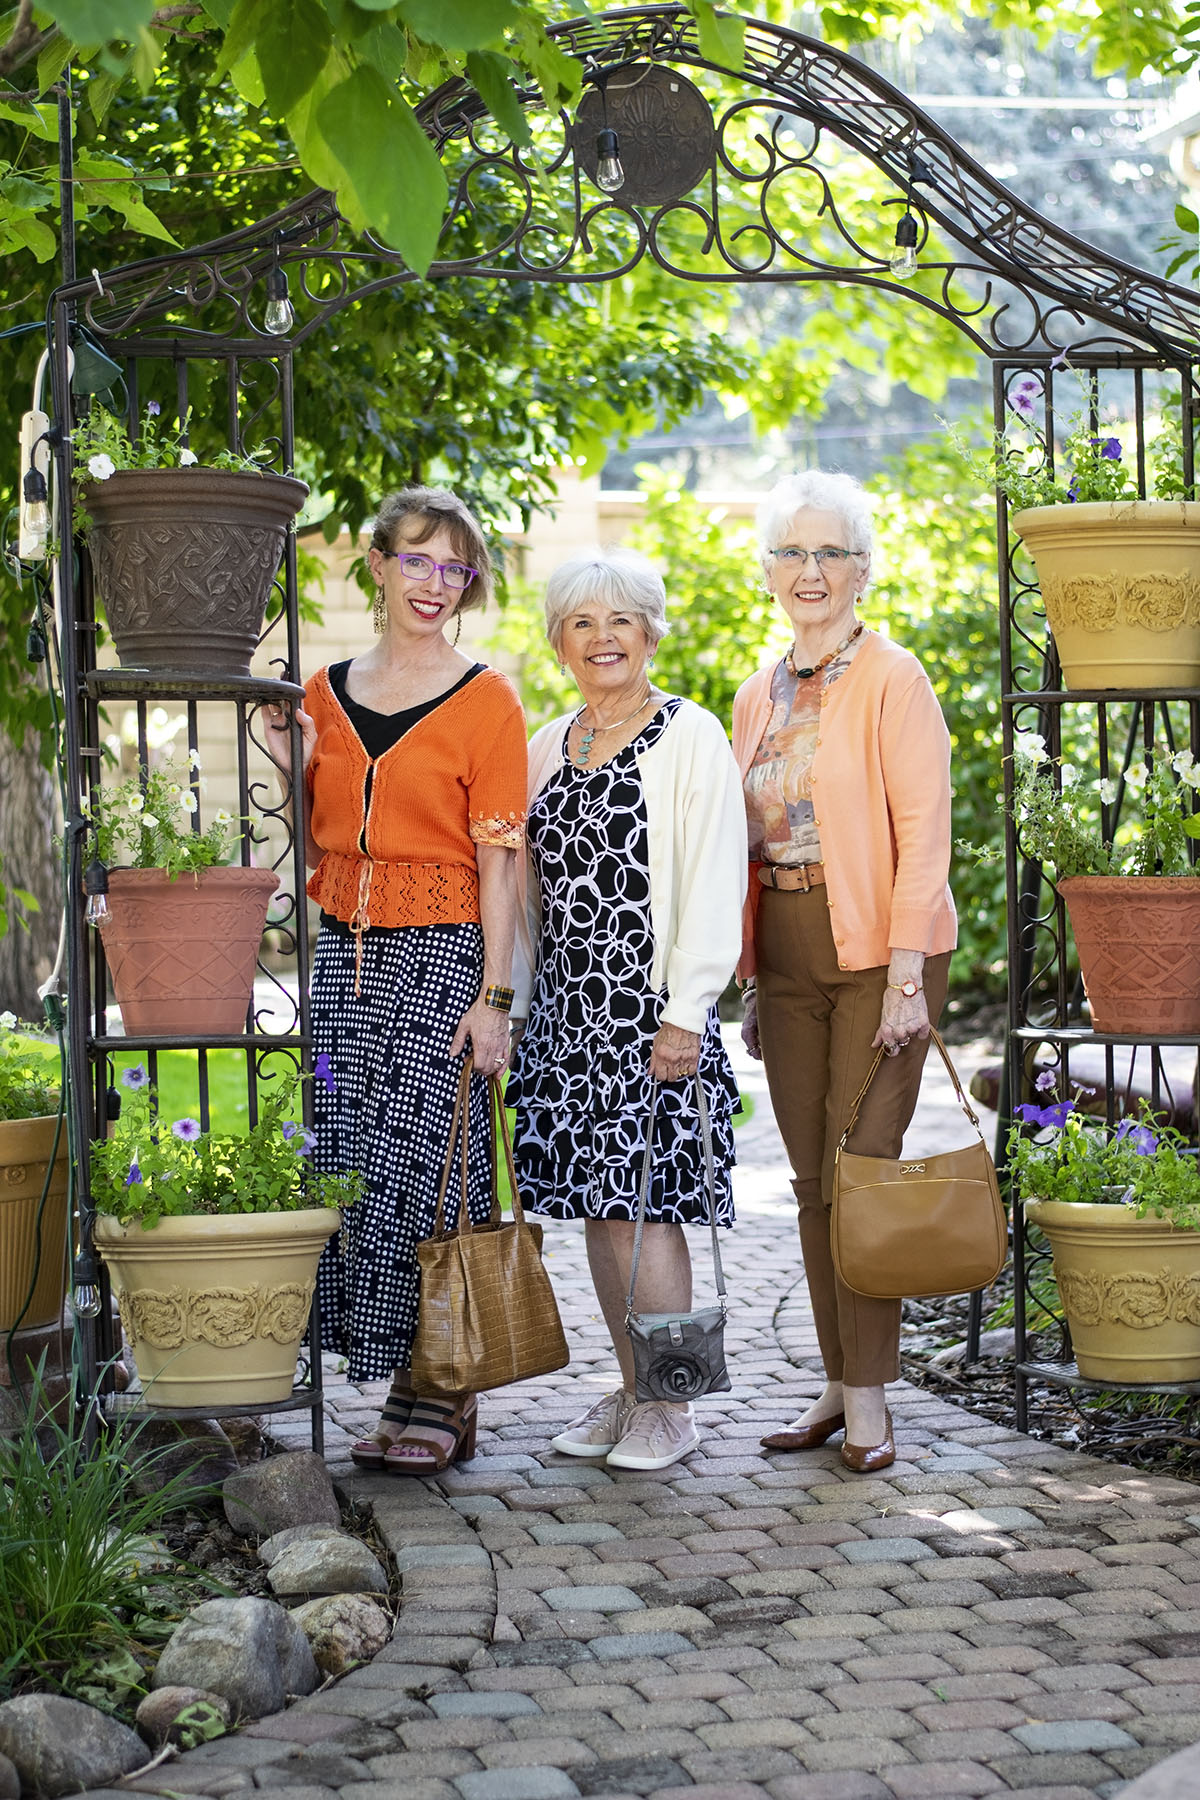 long grove single women over 50 Search for local 50+ singles in palatine online dating  warm, happy and open , i am a patient, flexible woman with a positive outlook on life i treat people with.